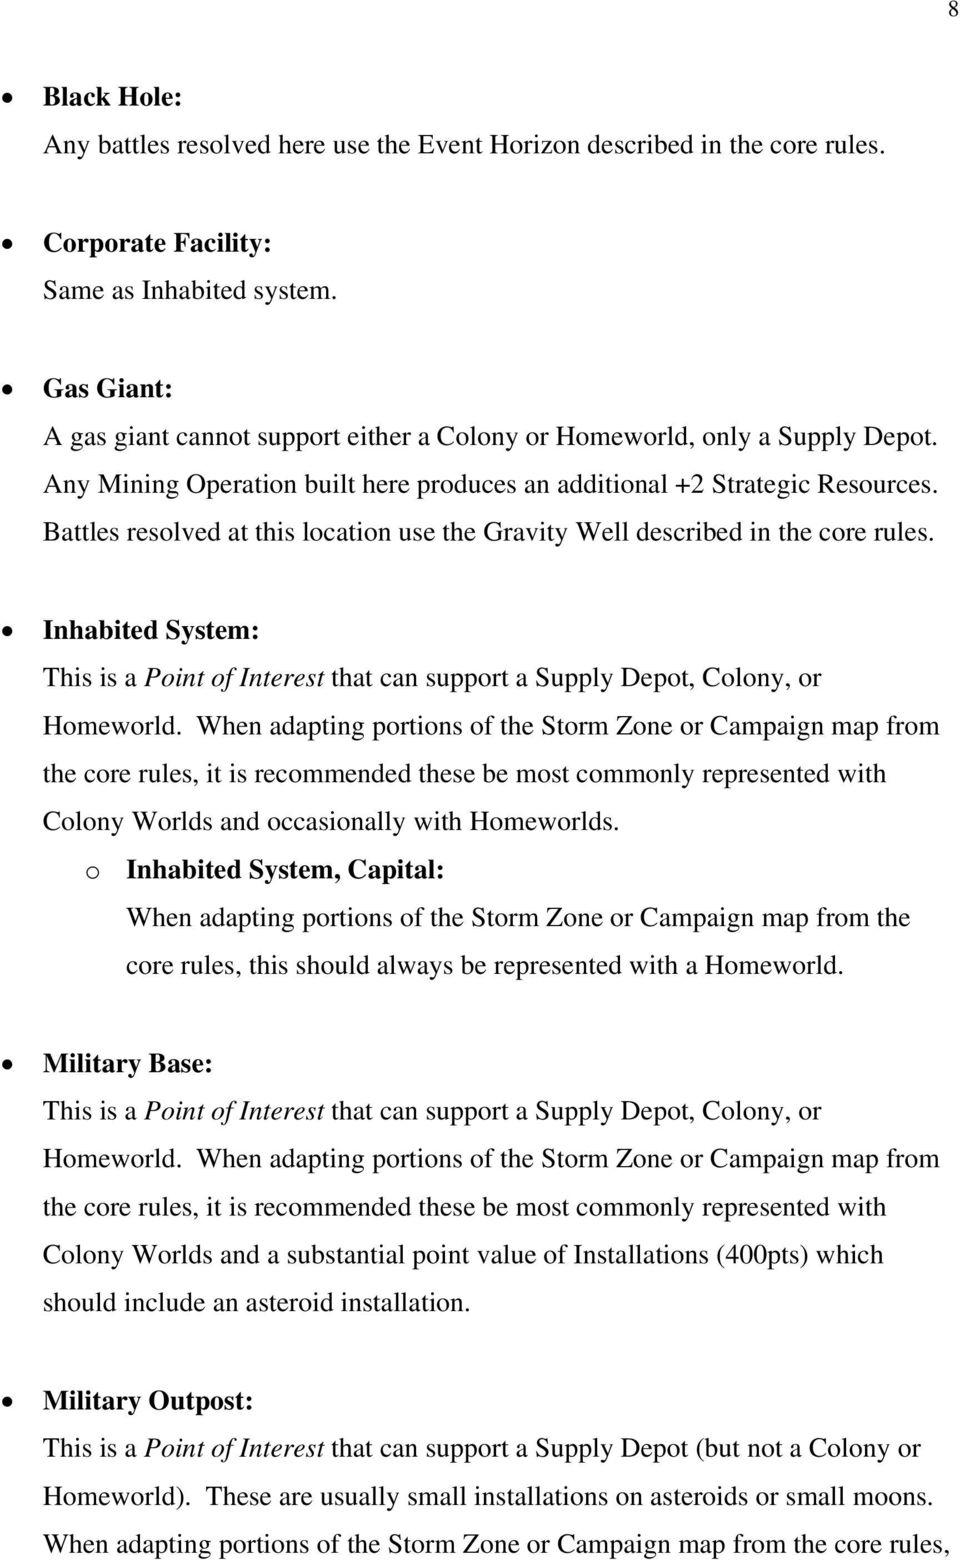 Dystopian Wars Rules Pdf